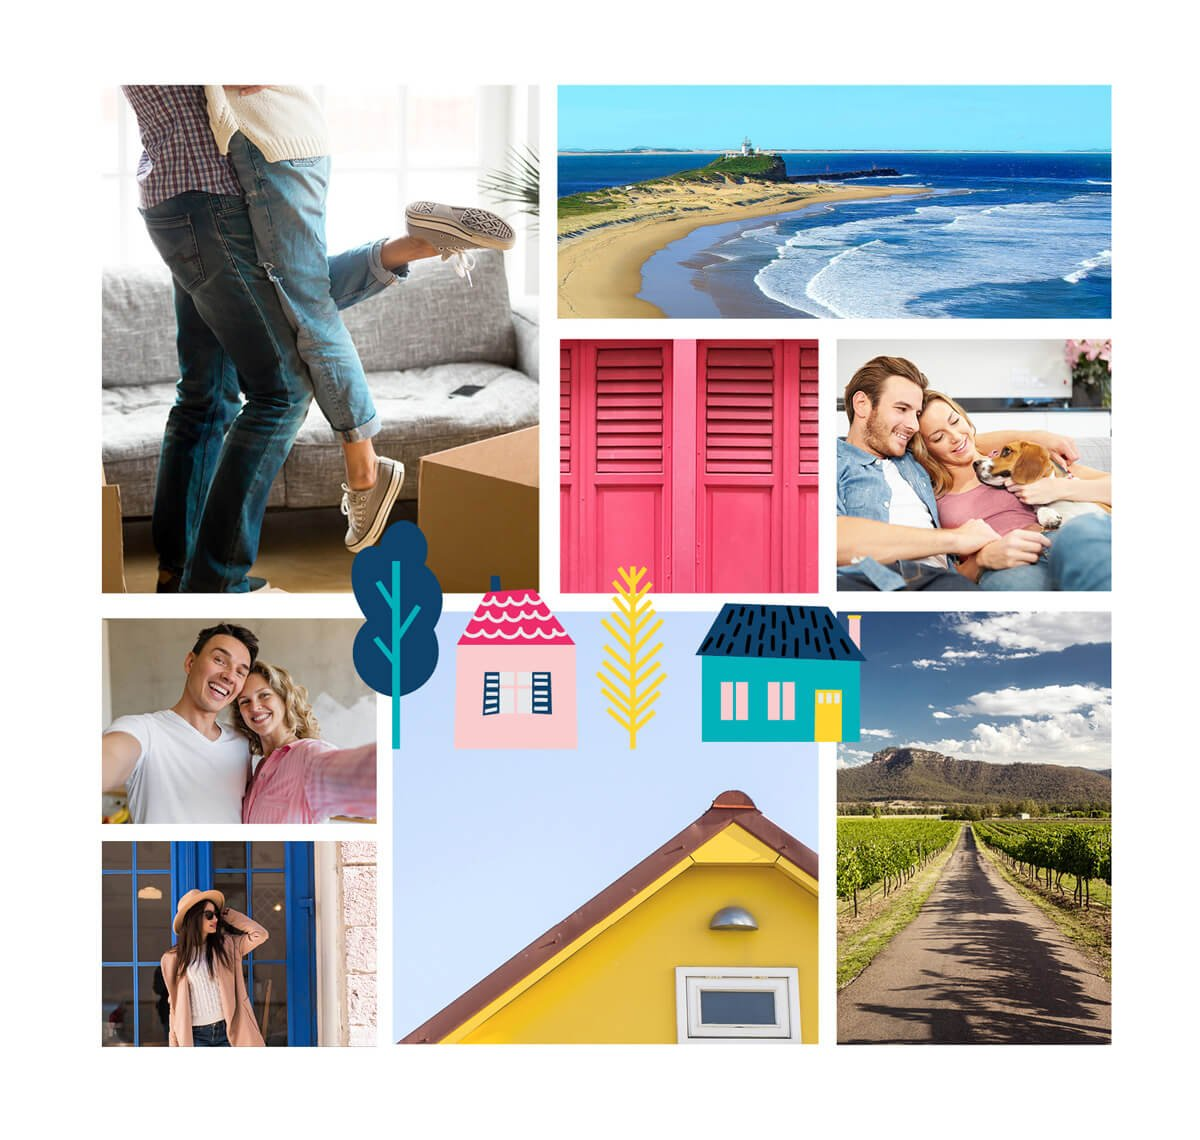 mood board design for a bright and colorful business branding project